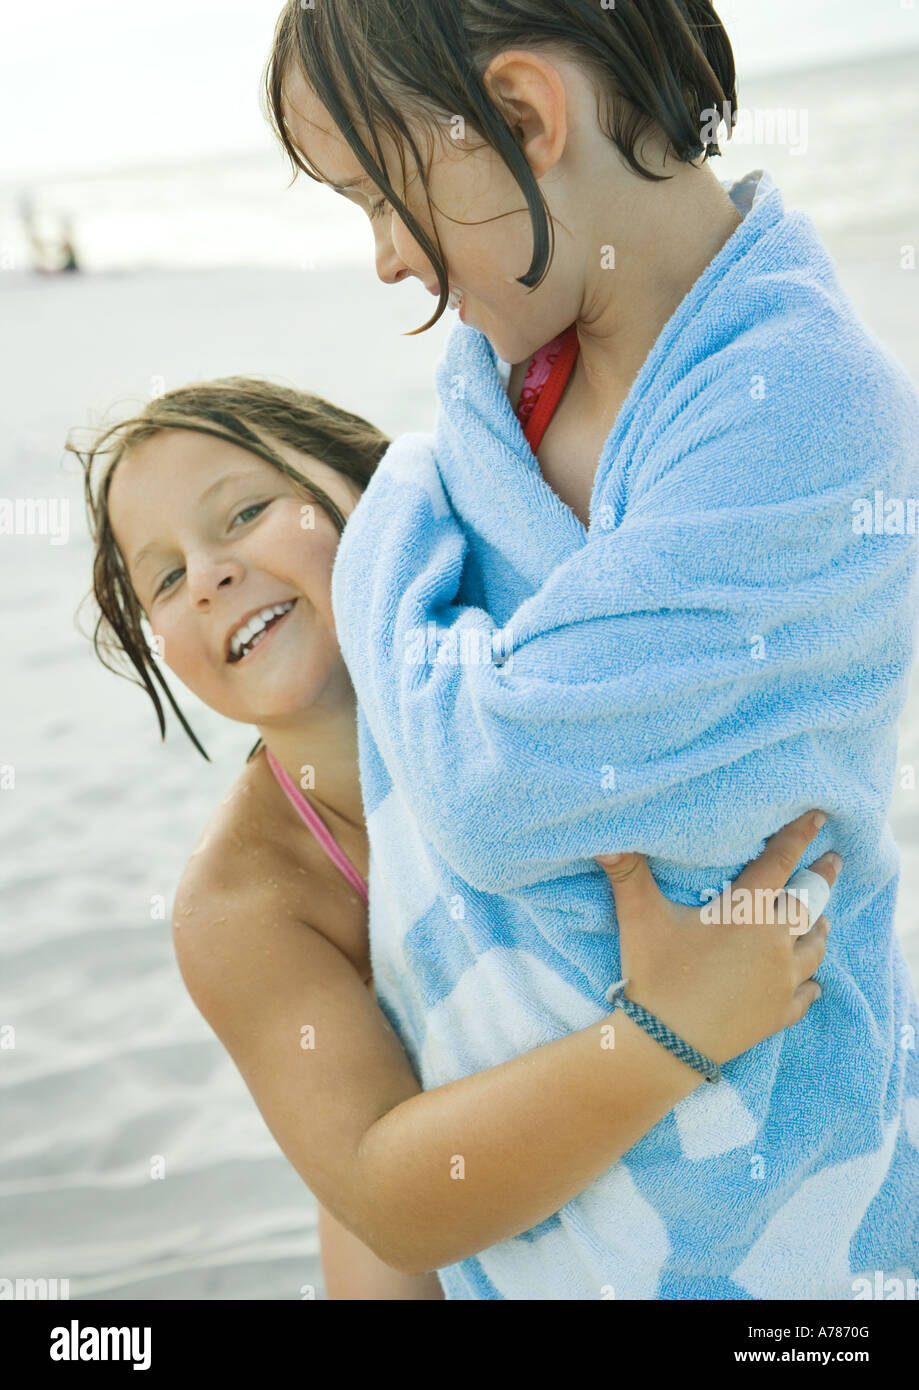 Two girls on beach, one wrapped in towel, the other holding girl around waist - Stock Image